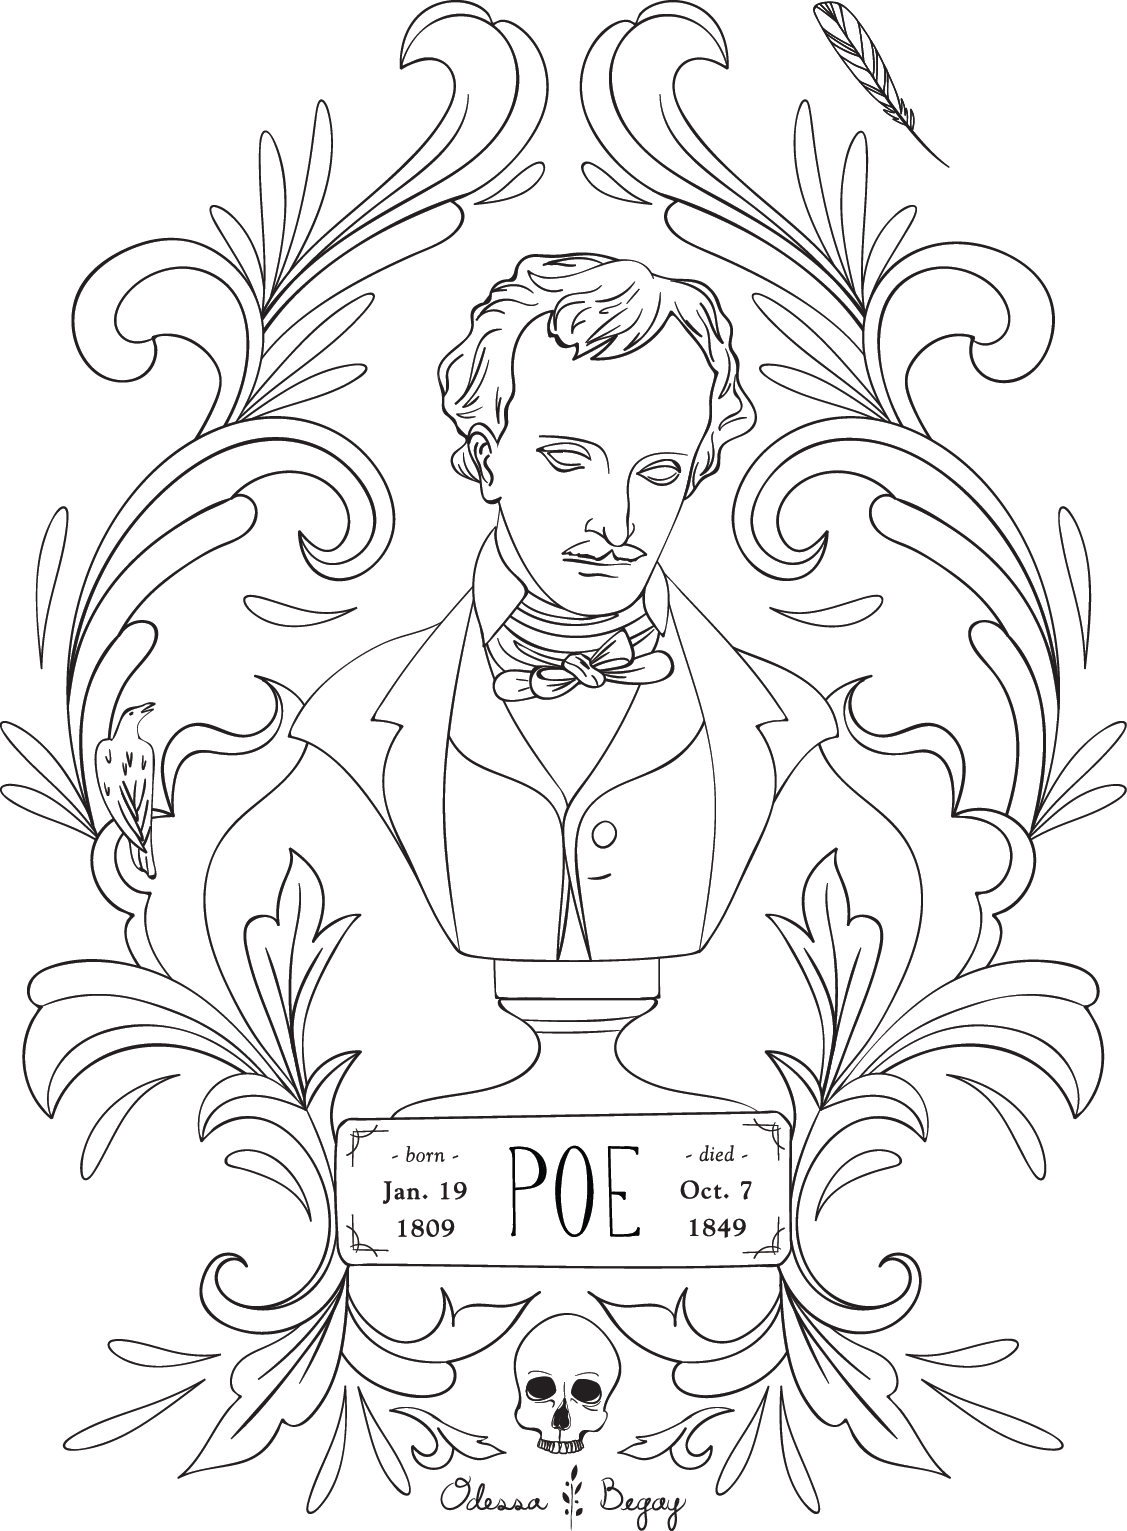 edgar allan poe coloring pages Free Coloring Page | Poe — Odessa Begay edgar allan poe coloring pages